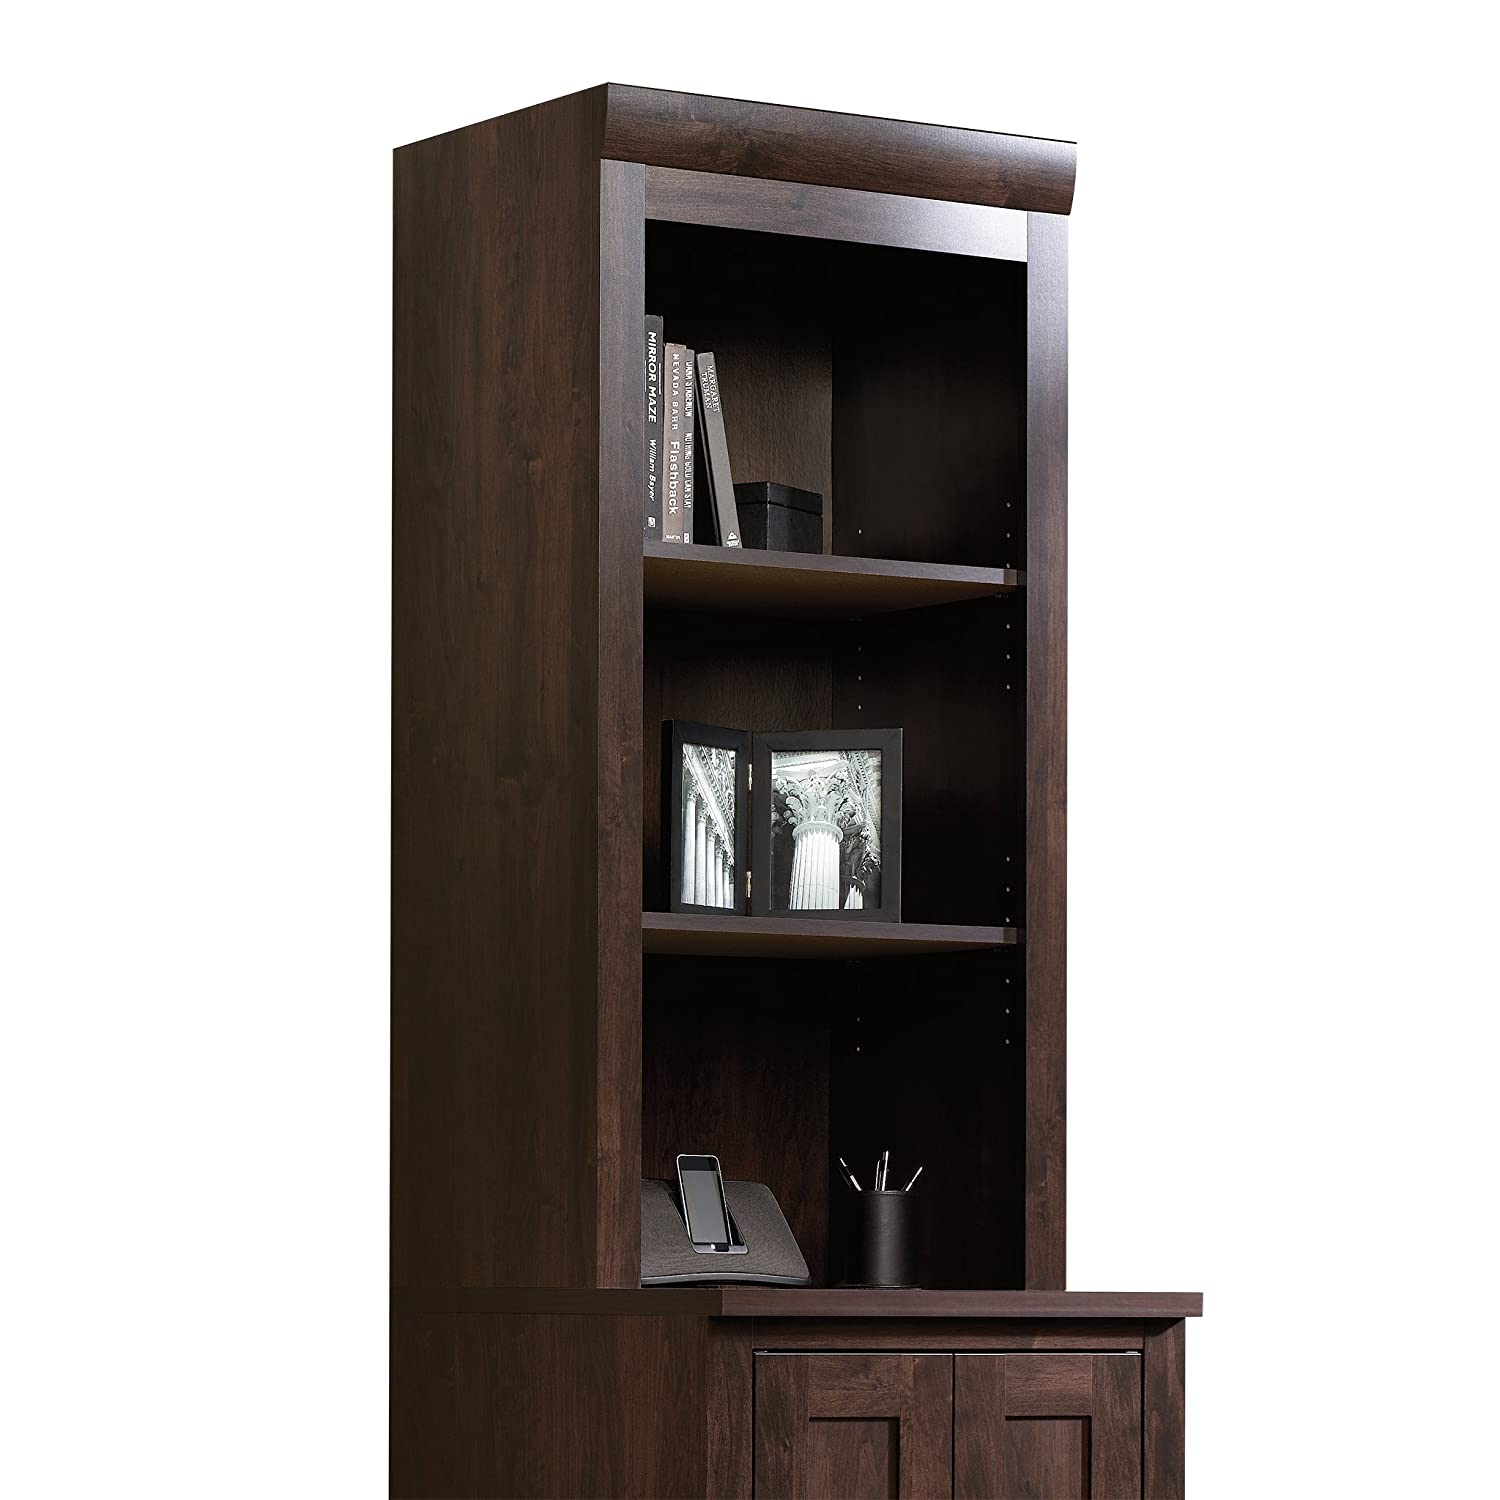 Sauder 408364 Office Port Hutch, Dark Alder Sauder Woodworking